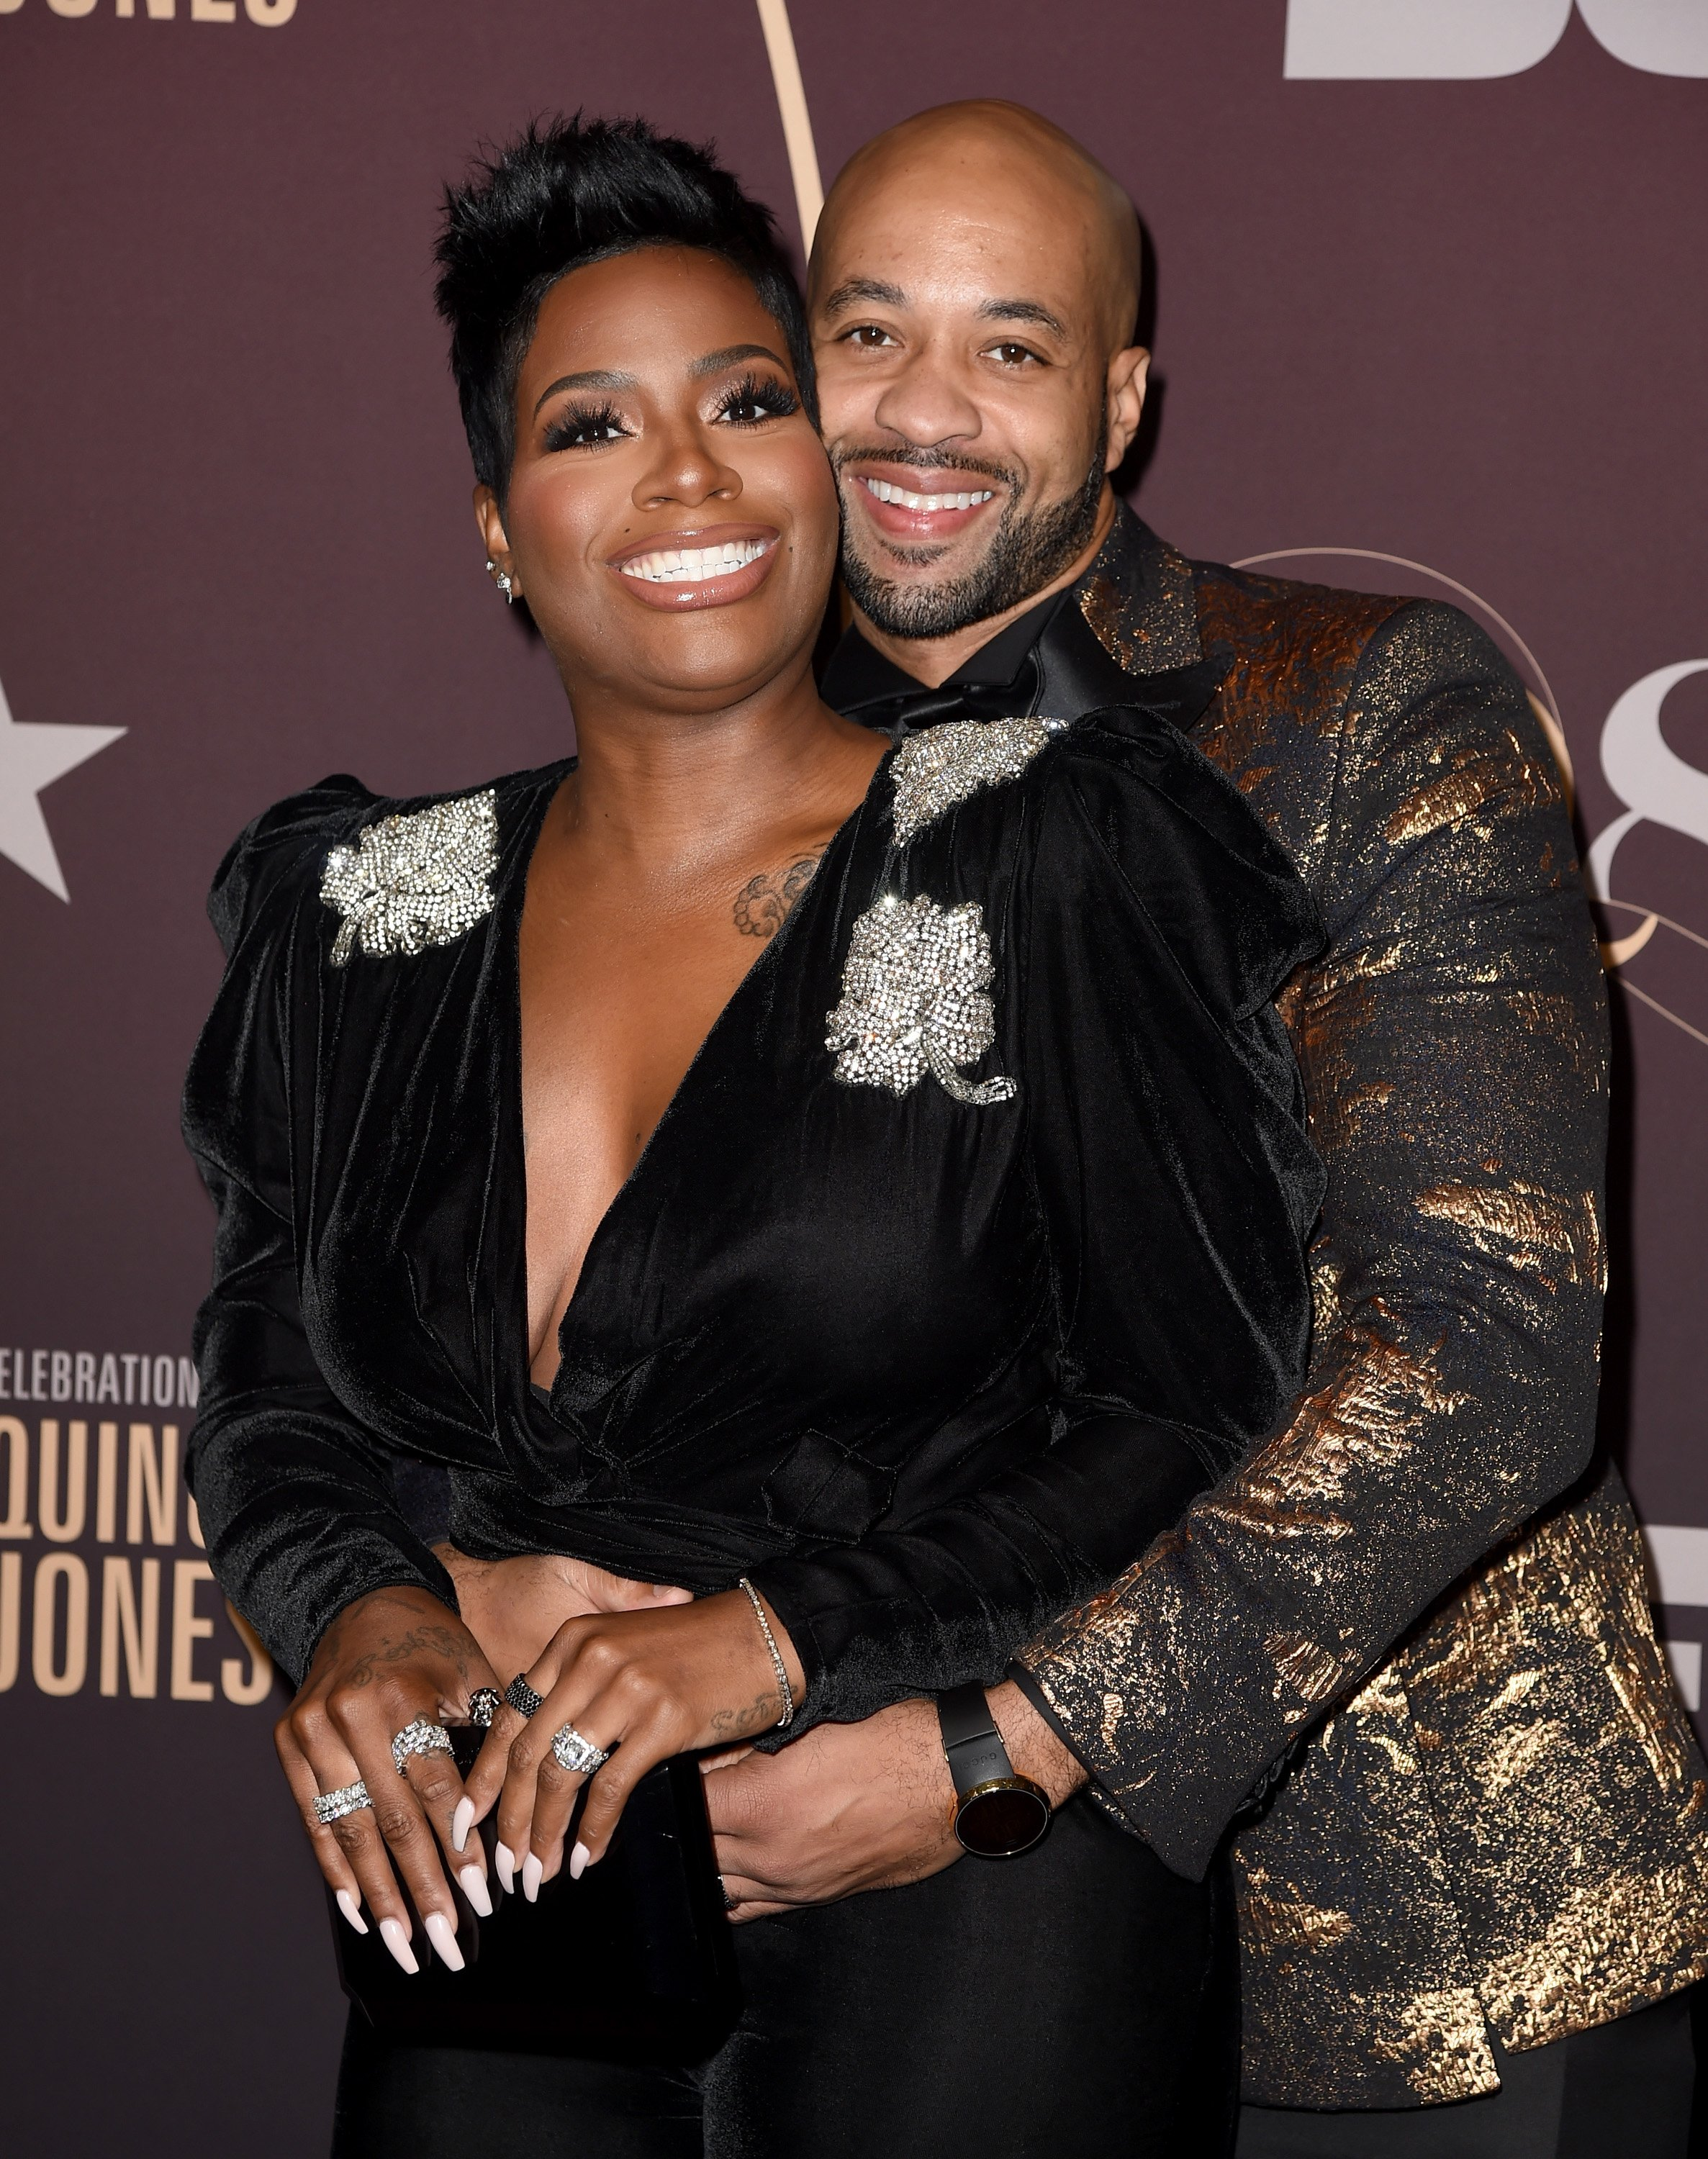 Fantasia Barrino and her husband Kendall Taylor arrive at Q85: A Musical Celebration at the Microsoft Theatre on September 25, 2018 in Los Angeles, California   Photo: Getty Images